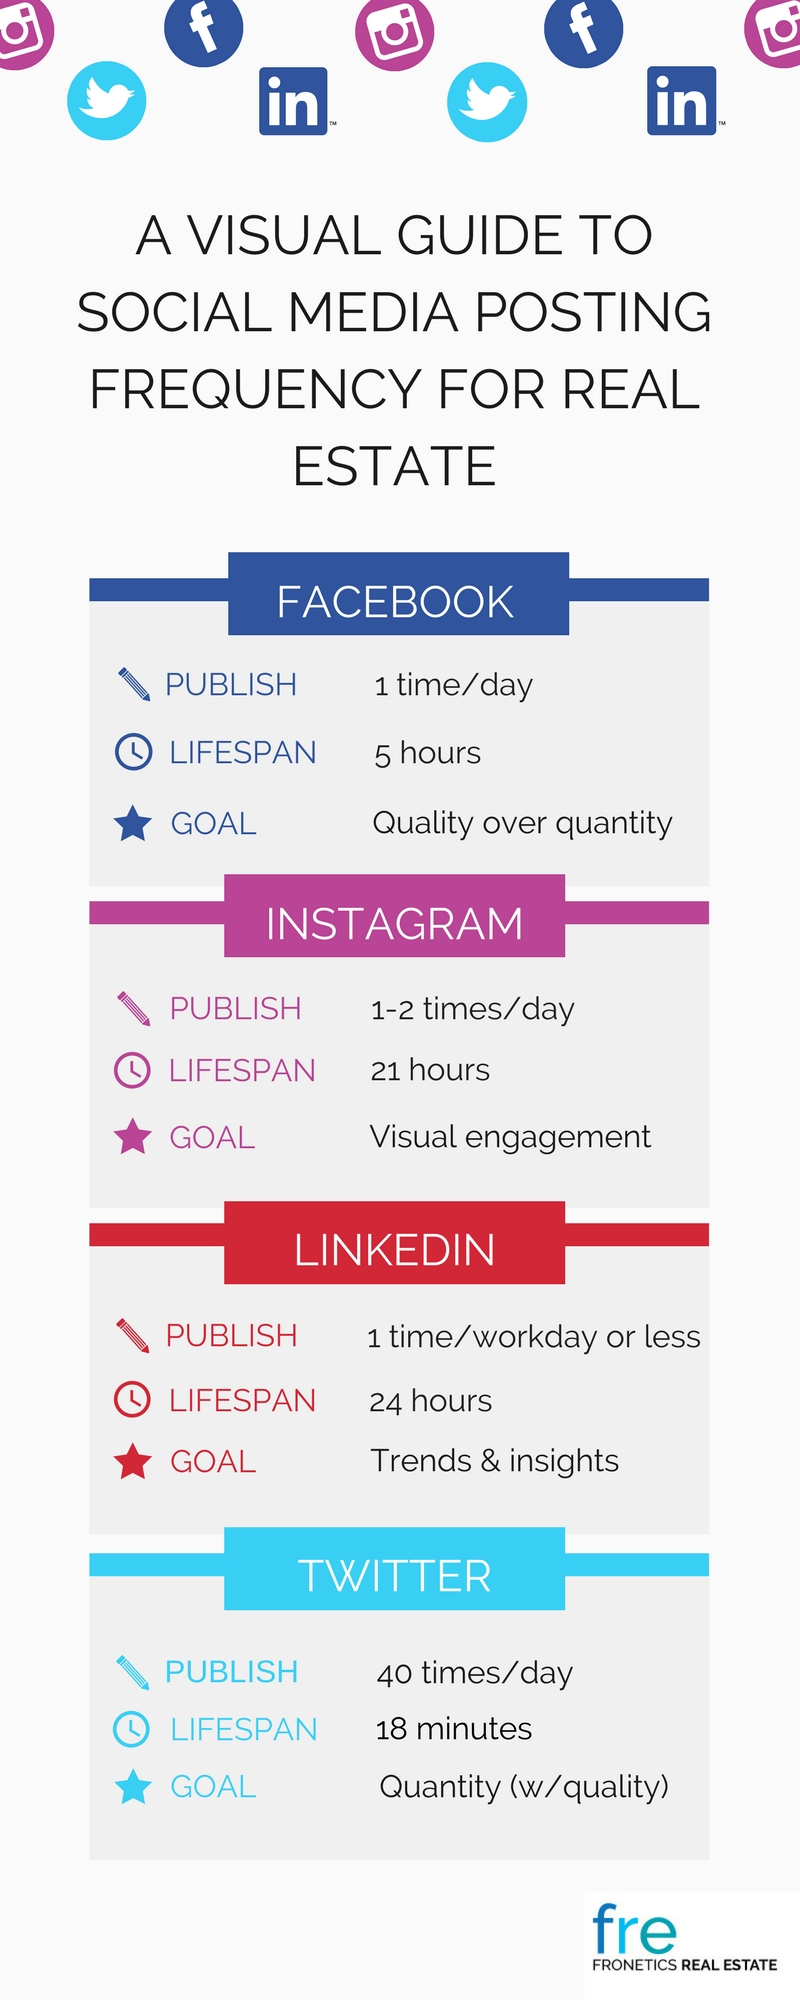 A Visual Guide to Social Media Posting Frequency for Real